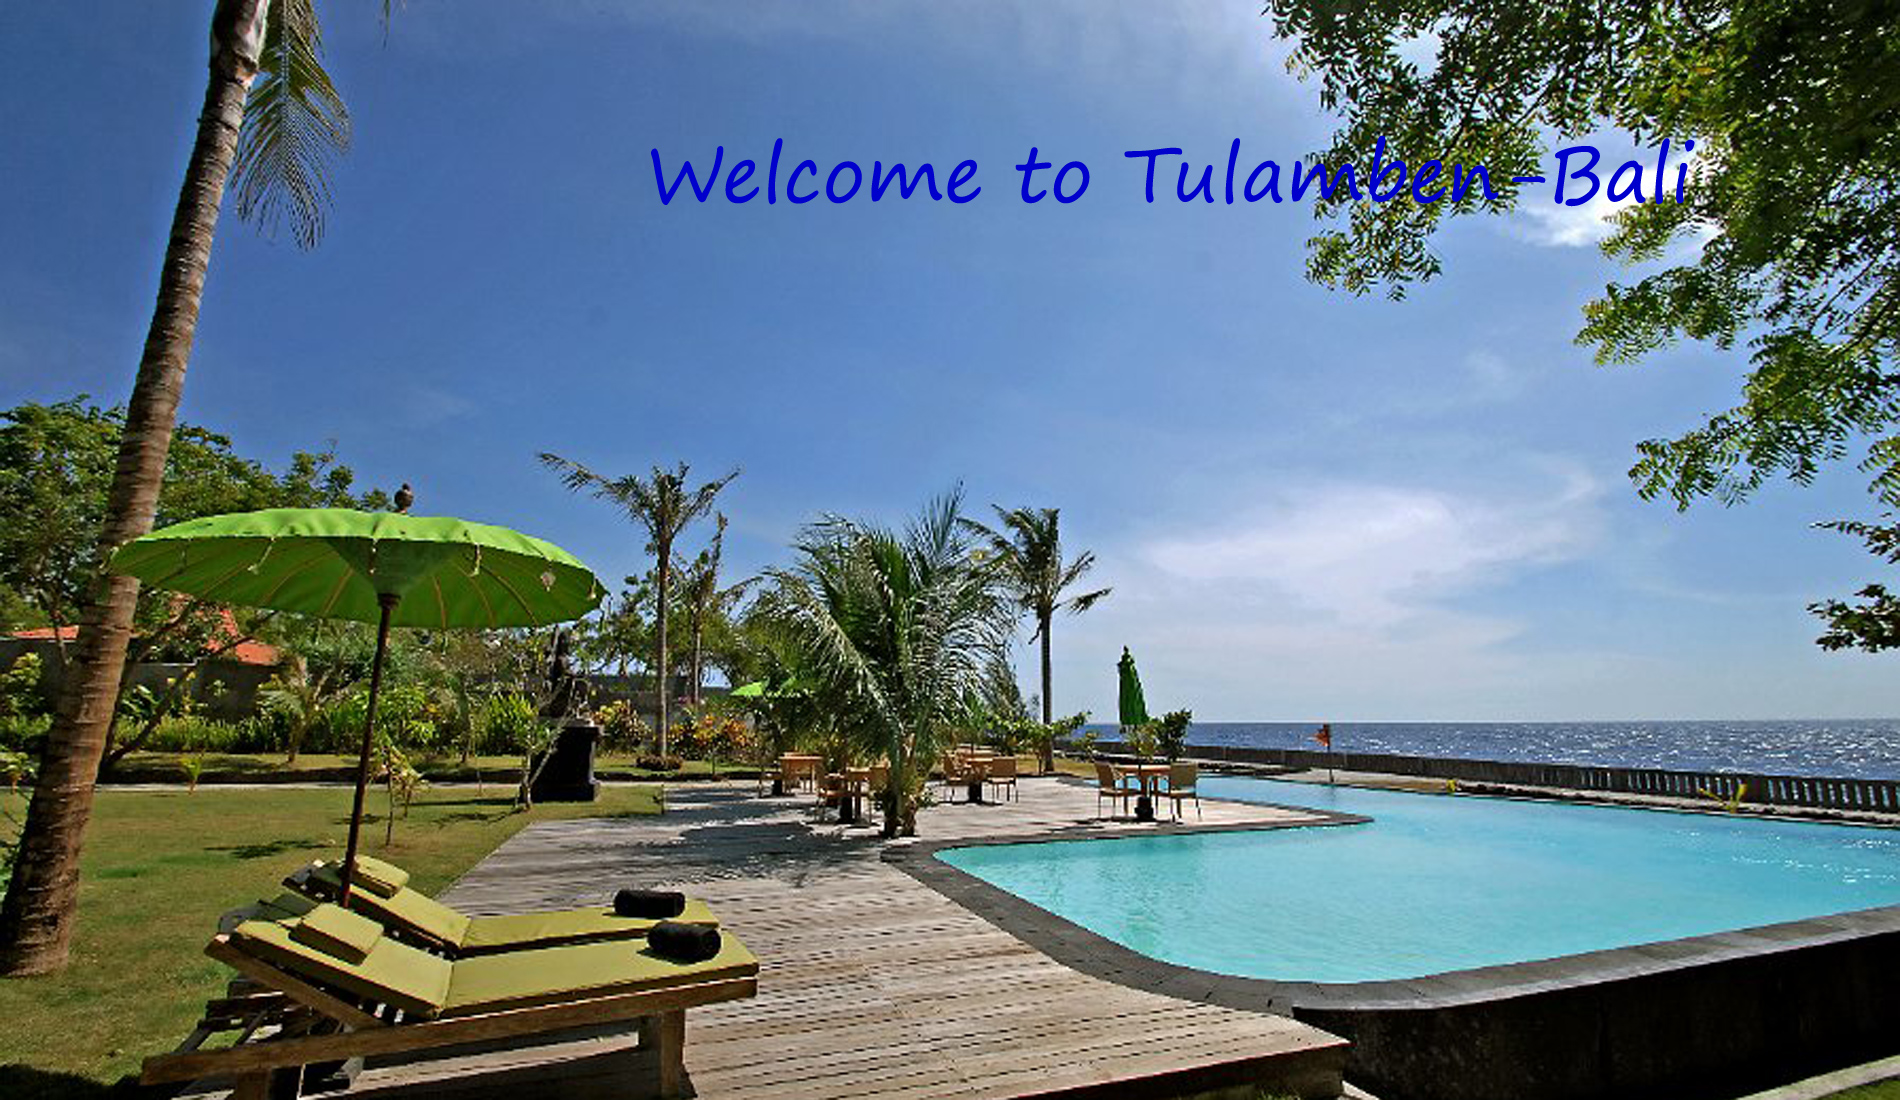 Tulamben Bali - Things To Do in Bali Tours Activities